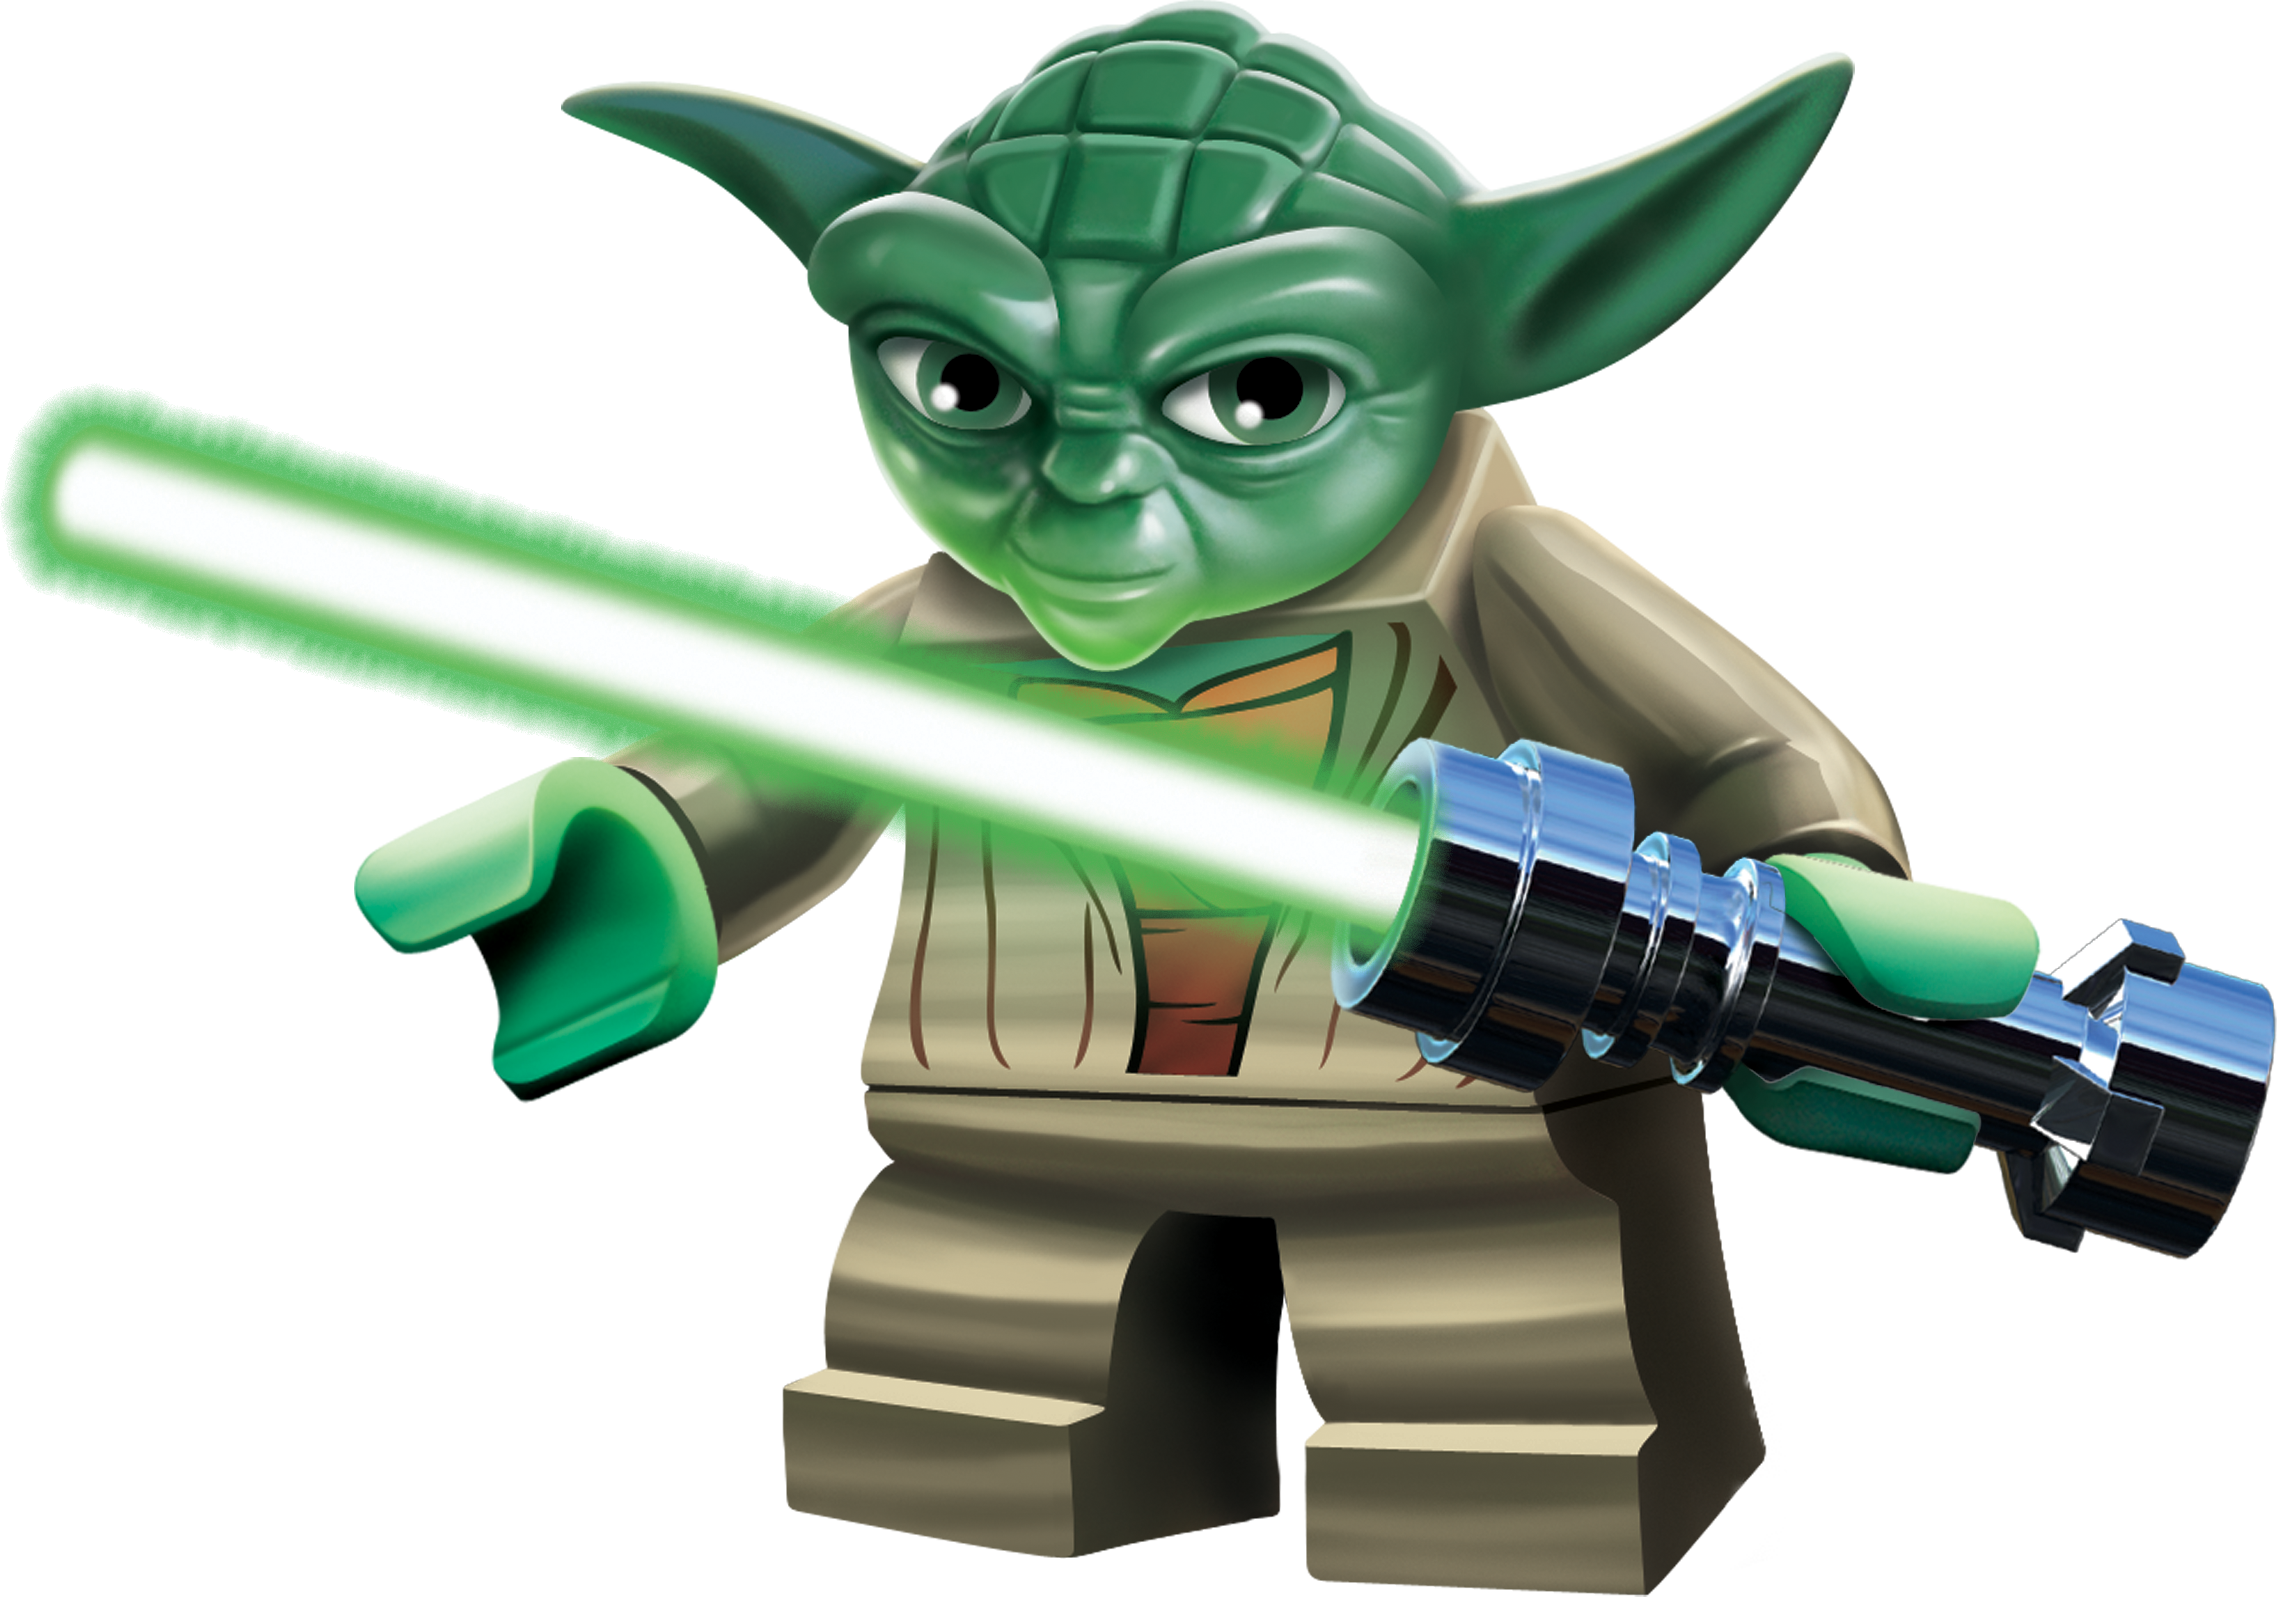 Lego star wars clipart png download Yoda is the best jedi | Dylan's board | Pinterest | Lego and Starwars png download